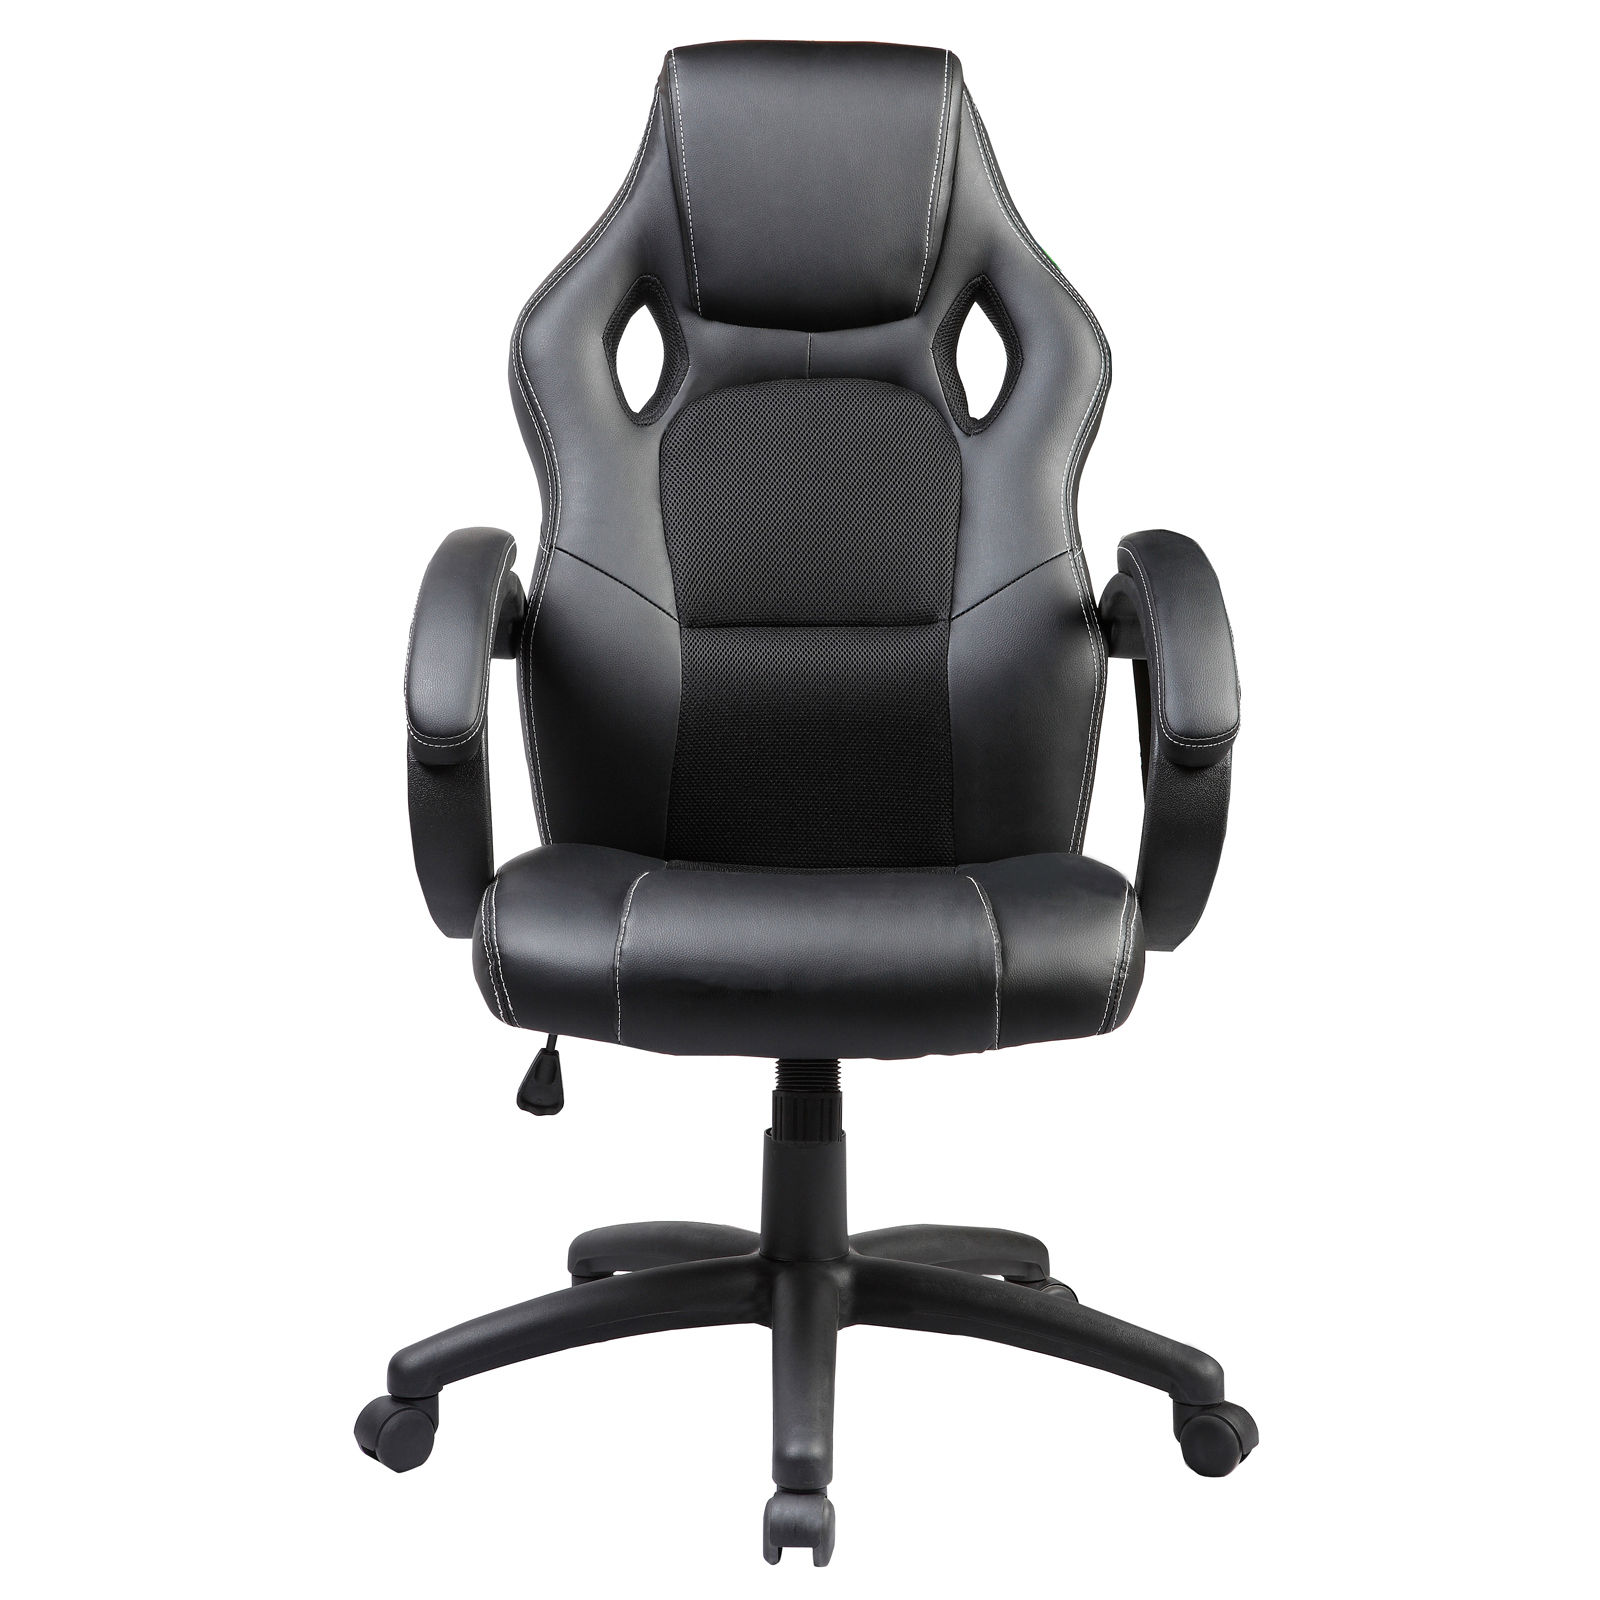 Ergonomic Executive High Back PU Leather Desk Computer Office Chair Black Am